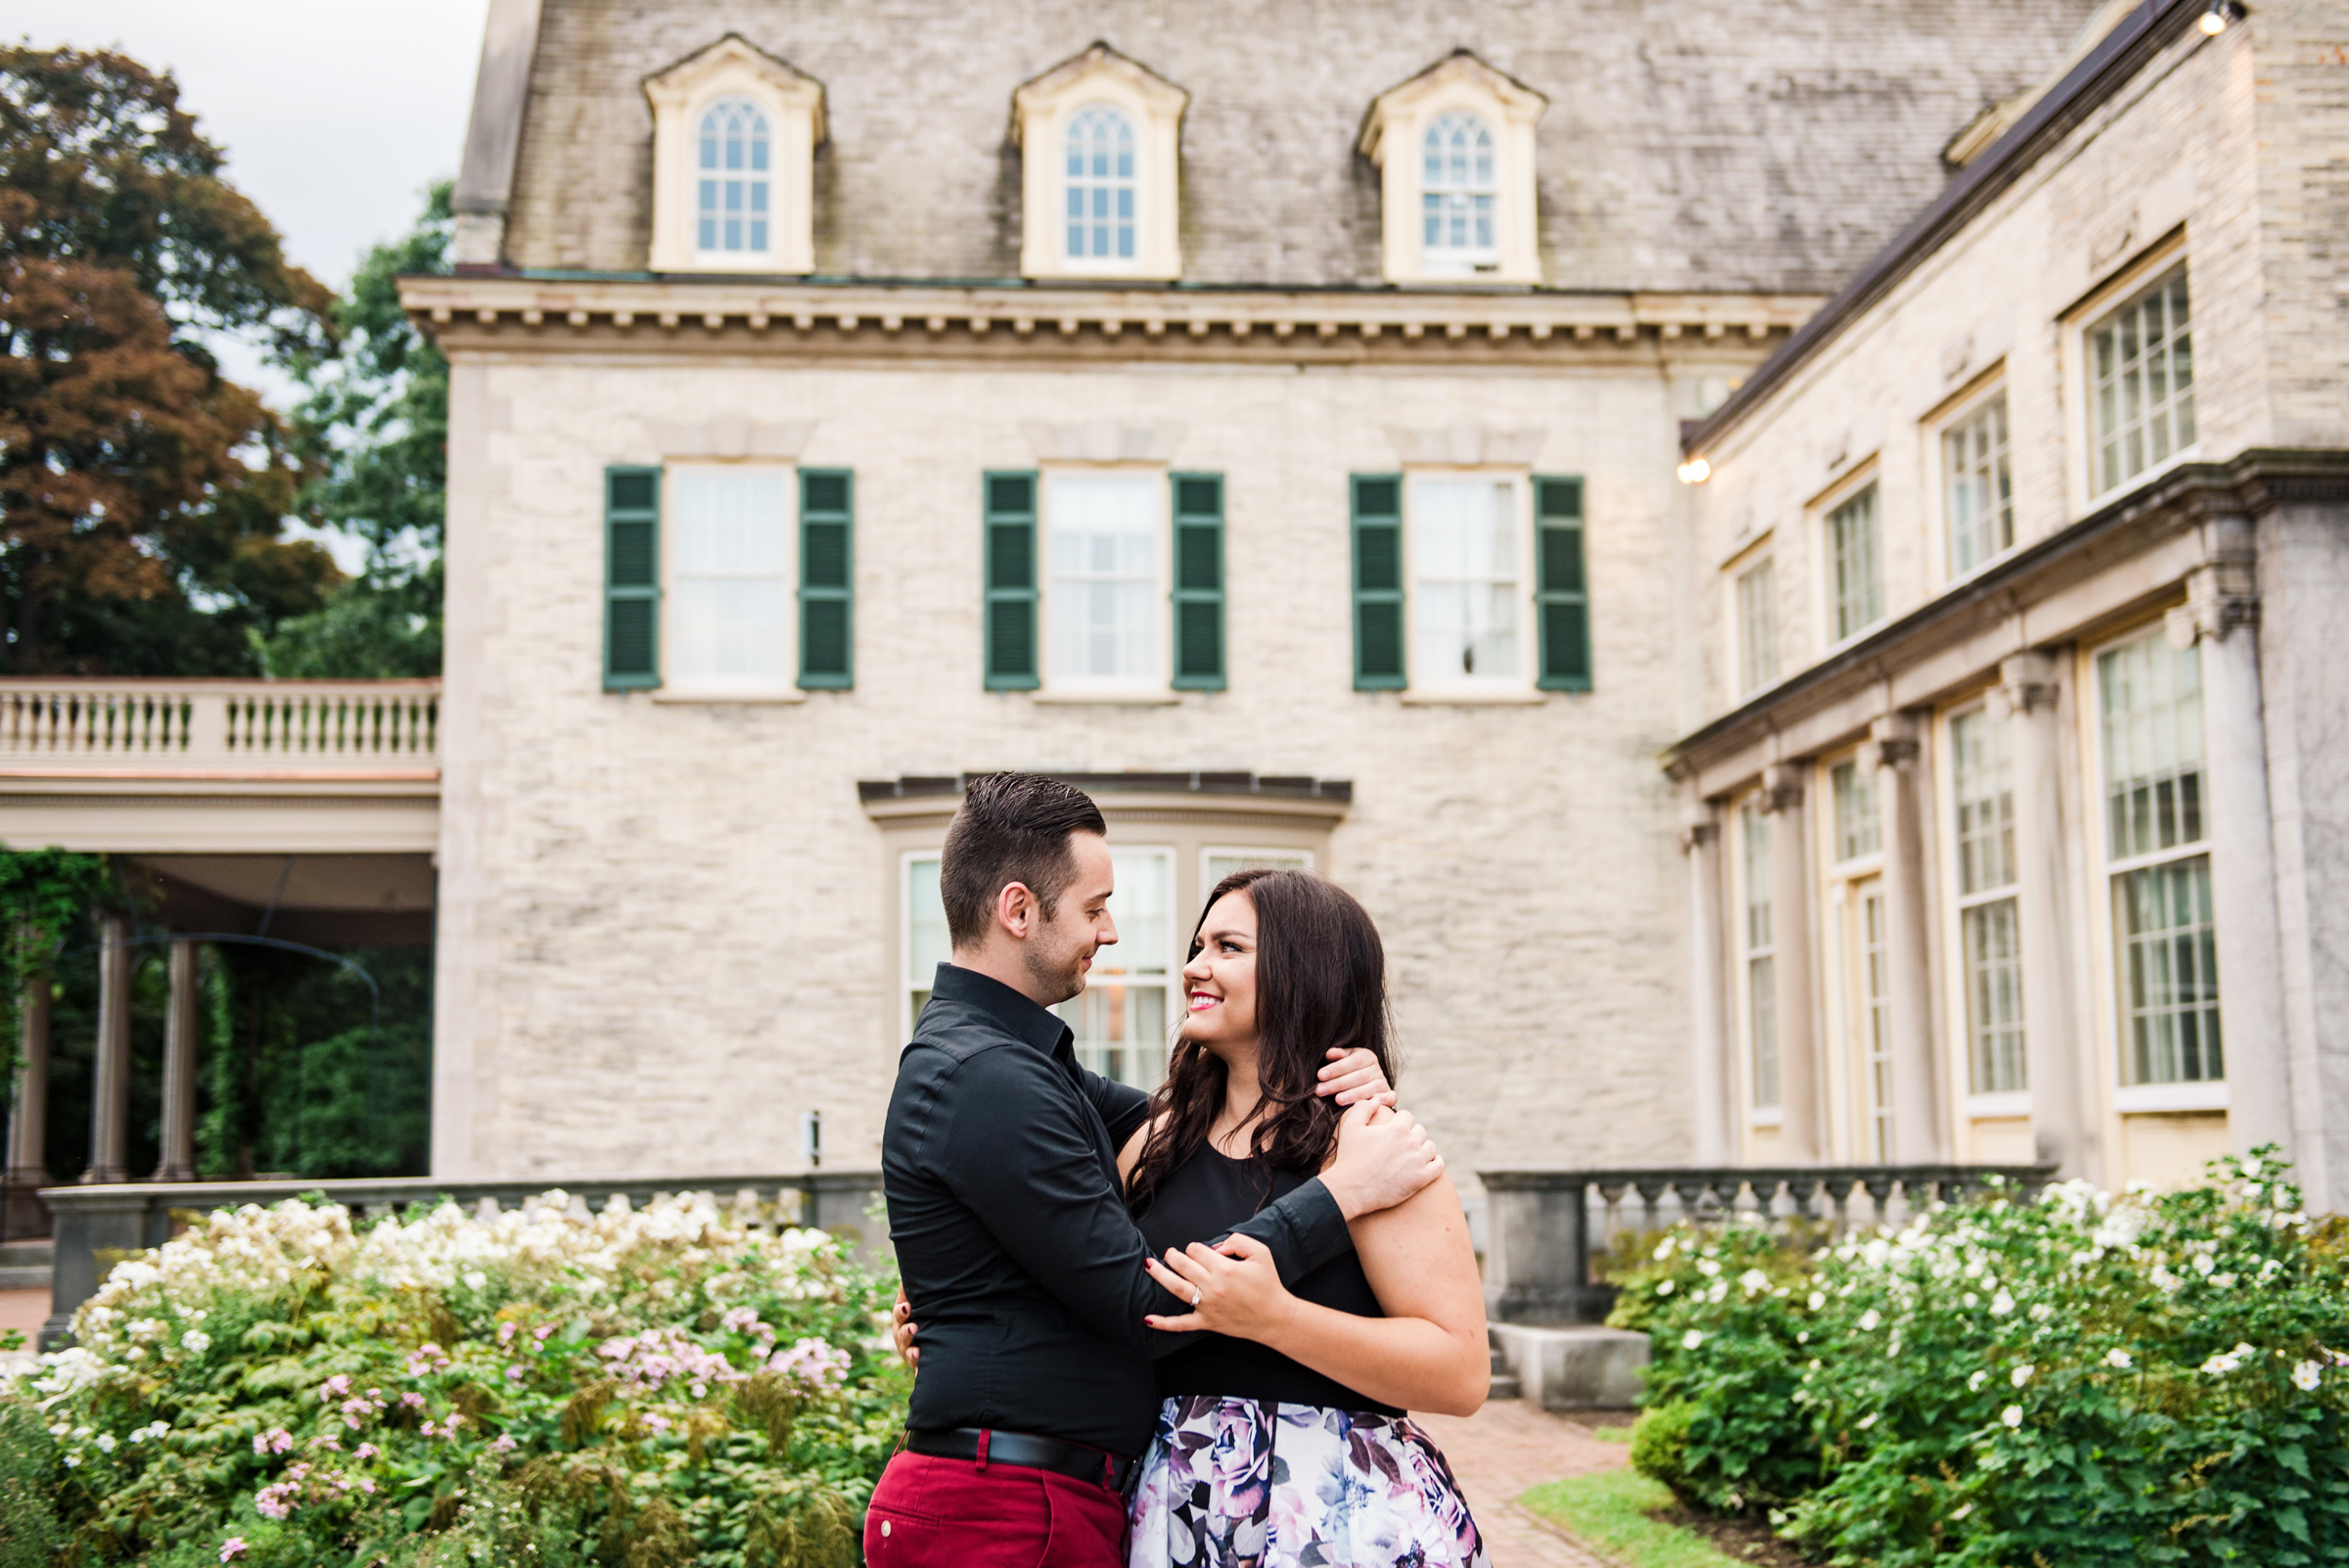 George_Eastman_House_Rochester_Engagement_Session_JILL_STUDIO_Rochester_NY_Photographer_DSC_6302.jpg